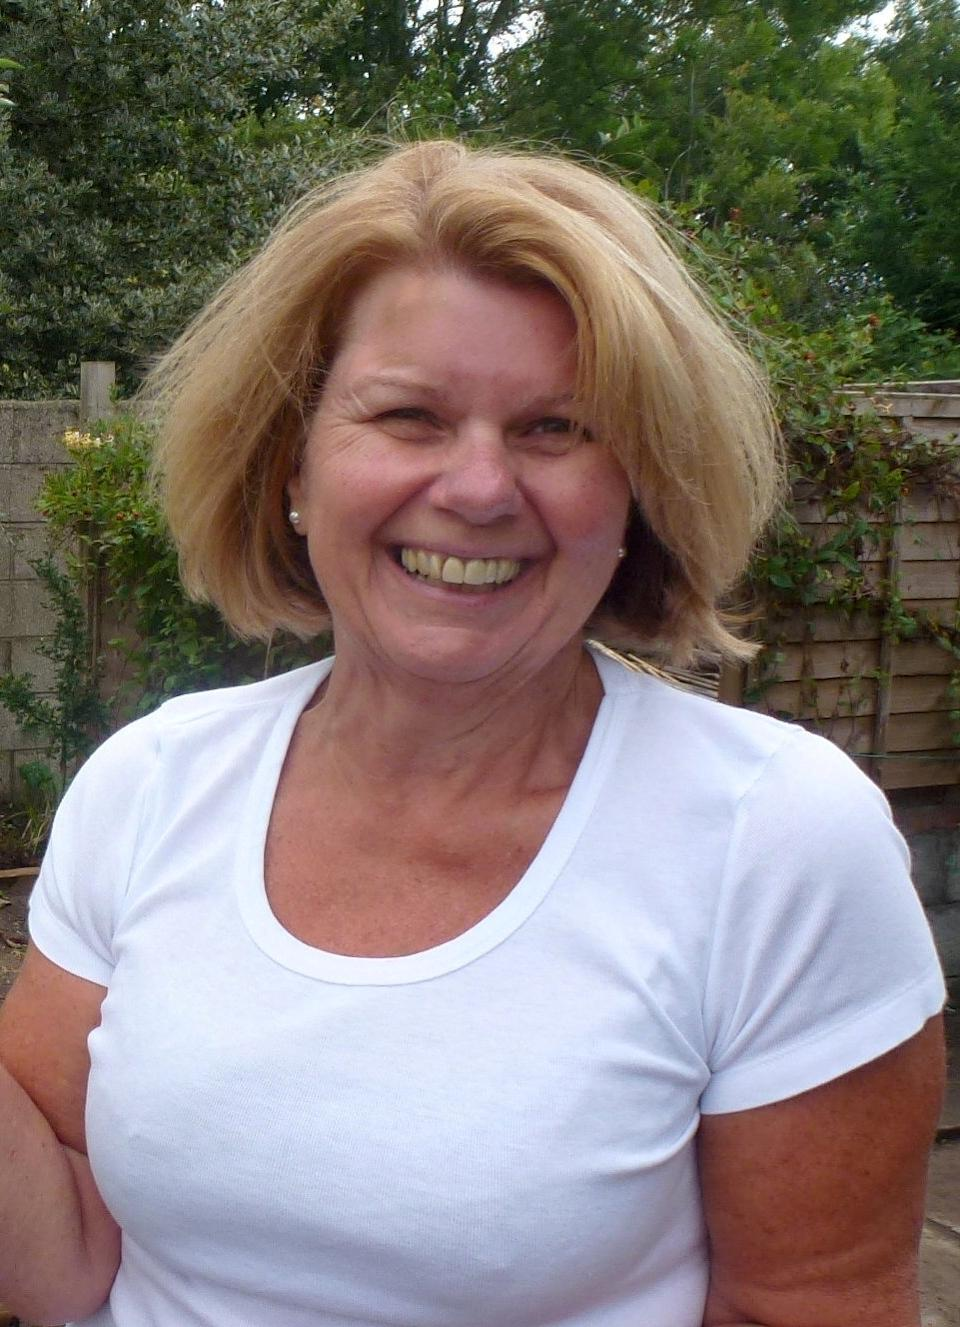 FILE PICTURE - Penelope Jackson (PICTURED), will go on trial at Bristol Crown Court today,  October 11, 2021, for the murder of her husband David at their home in Berrow, Somerset.  A woman has been arrested and police have launched a murder investigation after the death of a man in a small village. Officers were called to Berrow in Somerset at 9.15pm on Saturday after paramedics reported a male had been seriously injured. Police say he was pronounced dead at the scene and formal identification has yet to take place but the next of kin have been informed. Berrow, Somerset. 13 February 2021.